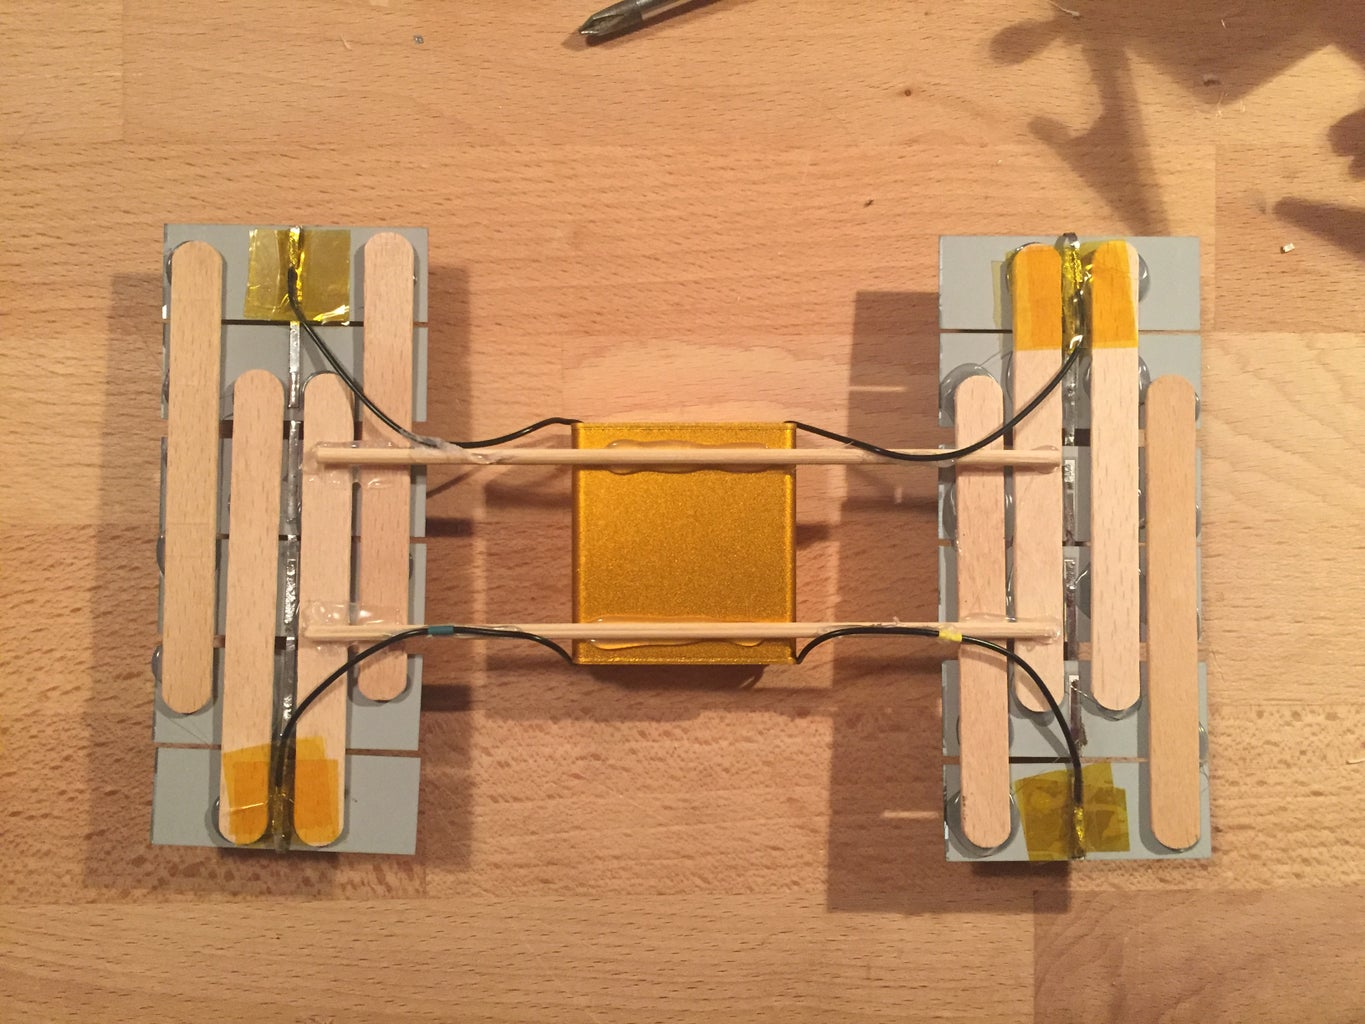 Step 4: Reinforce and Mount Solar Panels